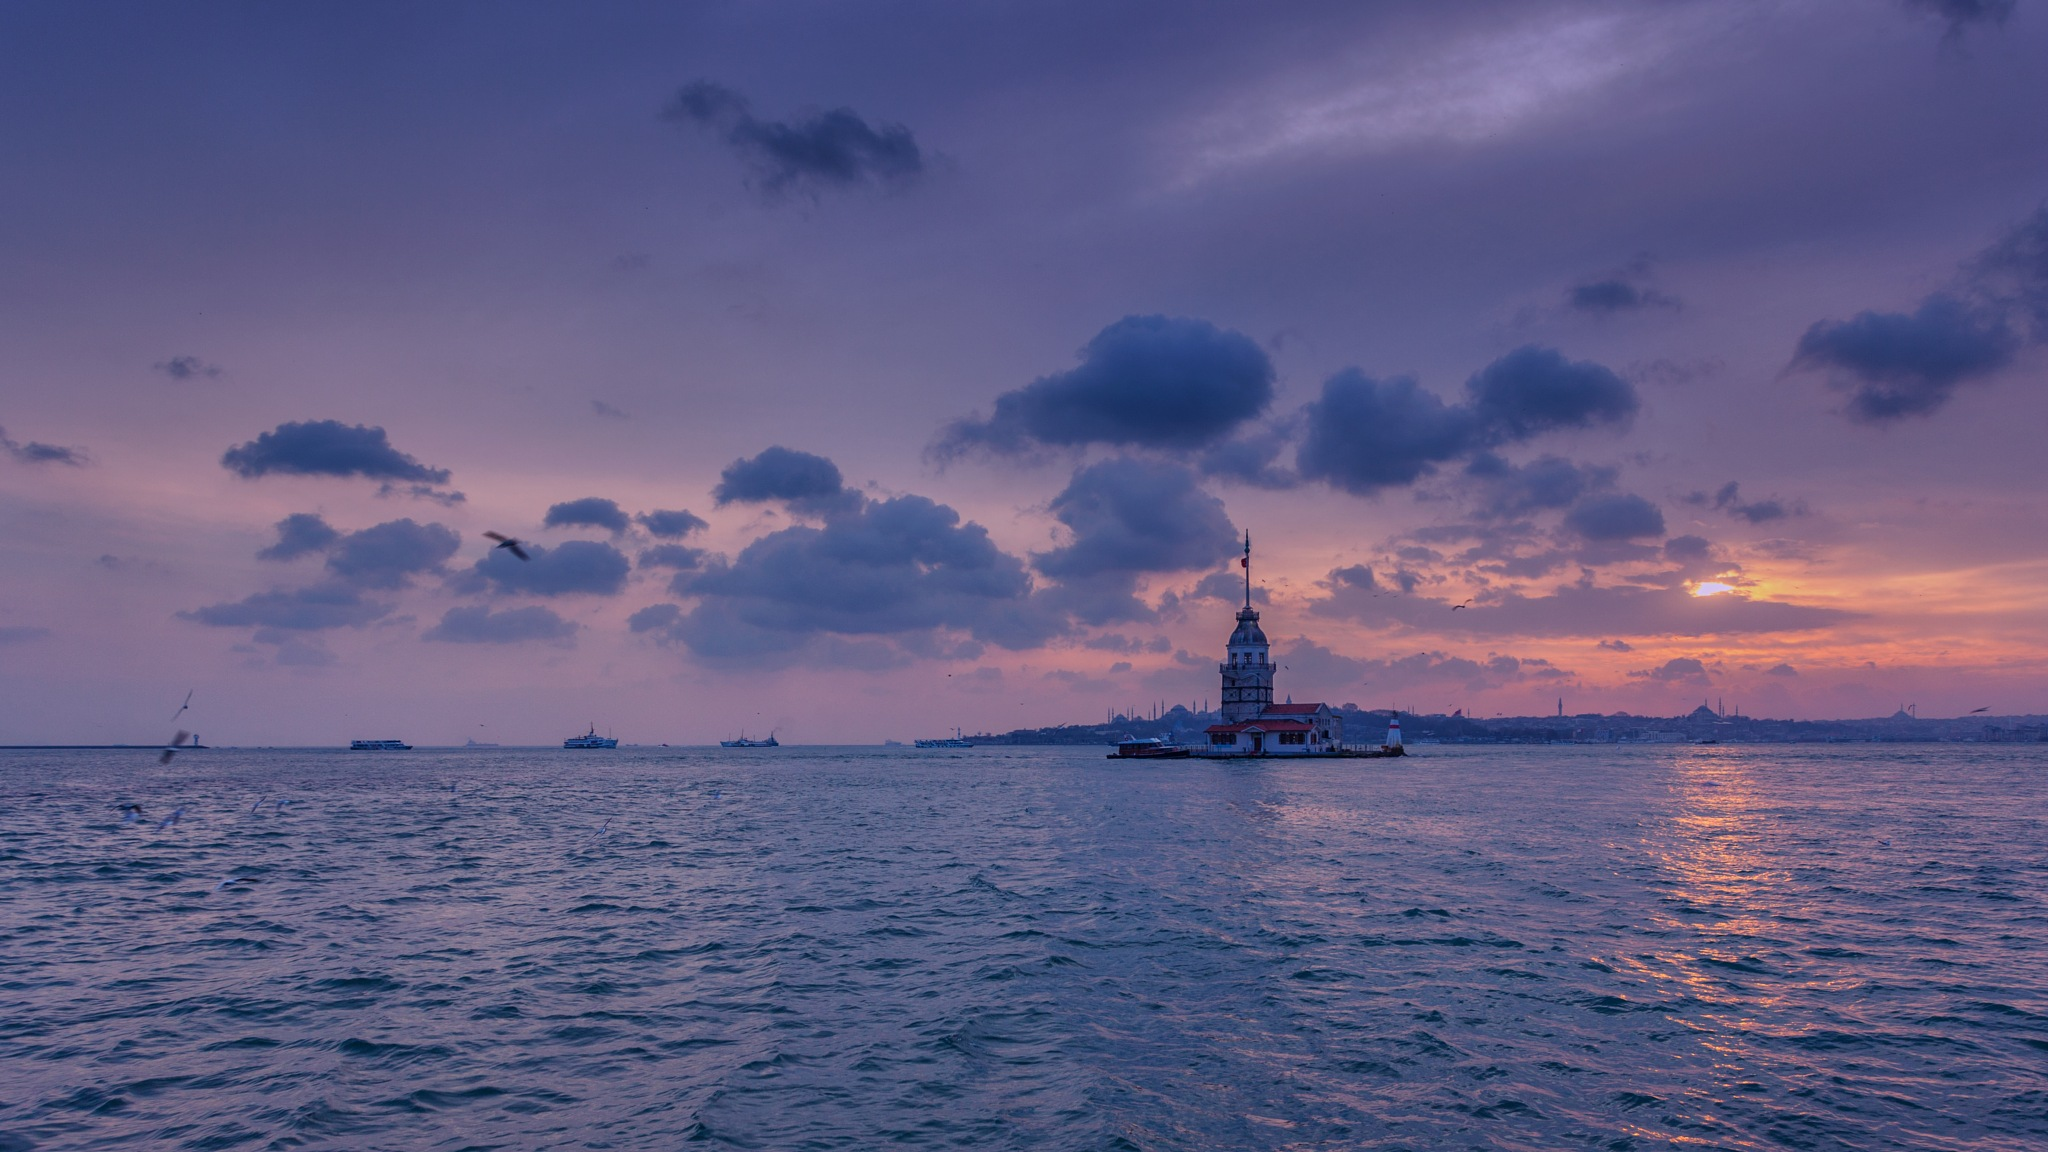 The Maiden's Tower VII by stevankordic